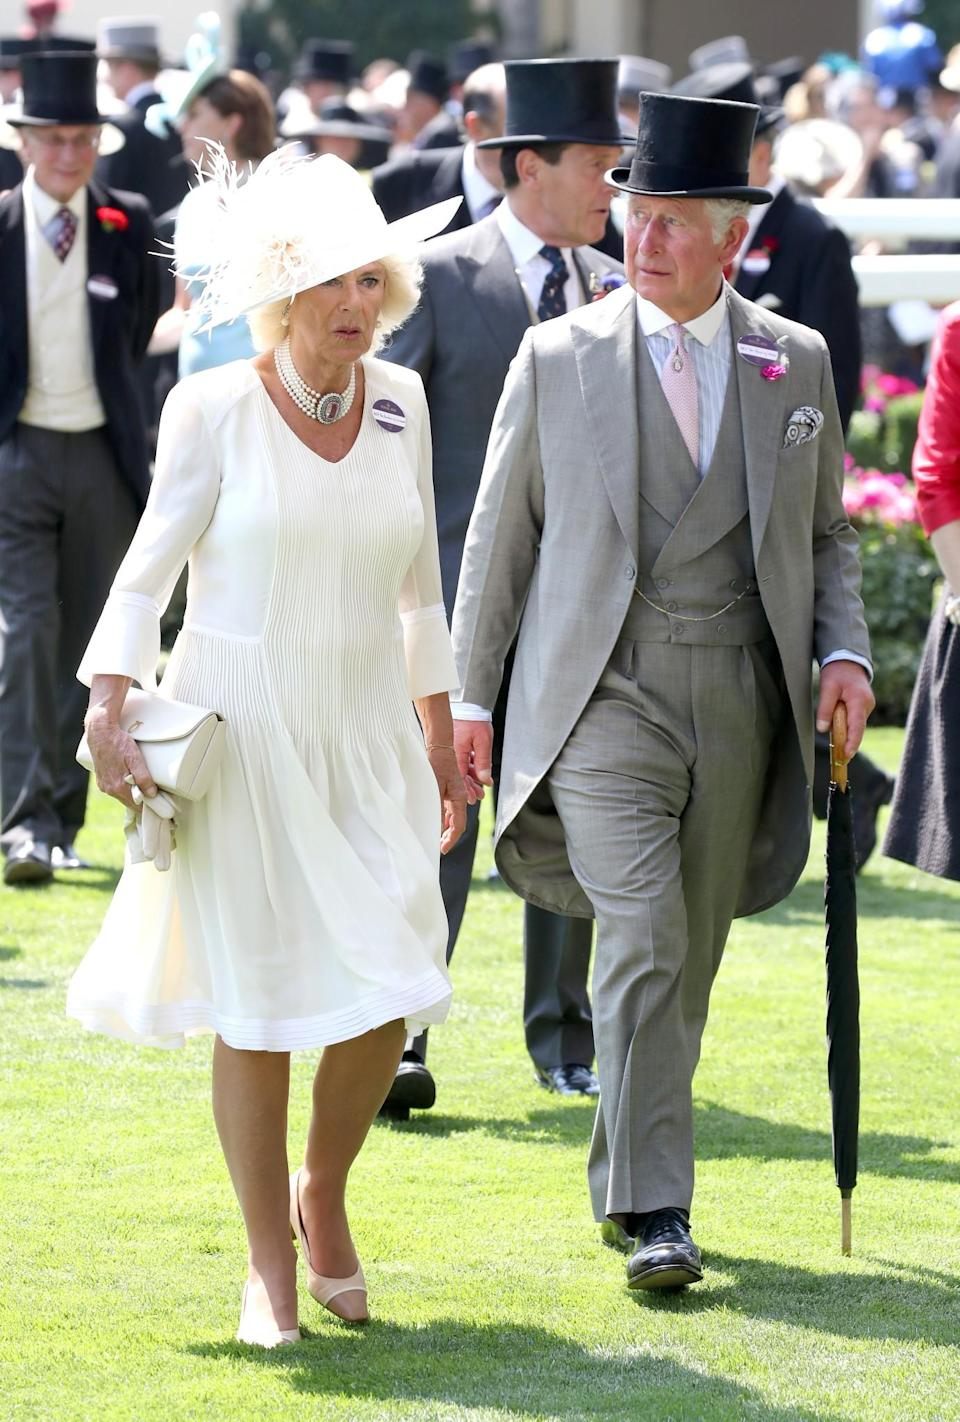 <p>Camilla, like Kate, chose an all-white look. But while Kate opted for a small hat, the Duchess of Cornwall made a splash with a wide-rimmed number. Meanwhile Prince Charles worked a grey three-piece suit, with pale pink tie, and black top hat. <br><em>[Photo: Getty]</em> </p>